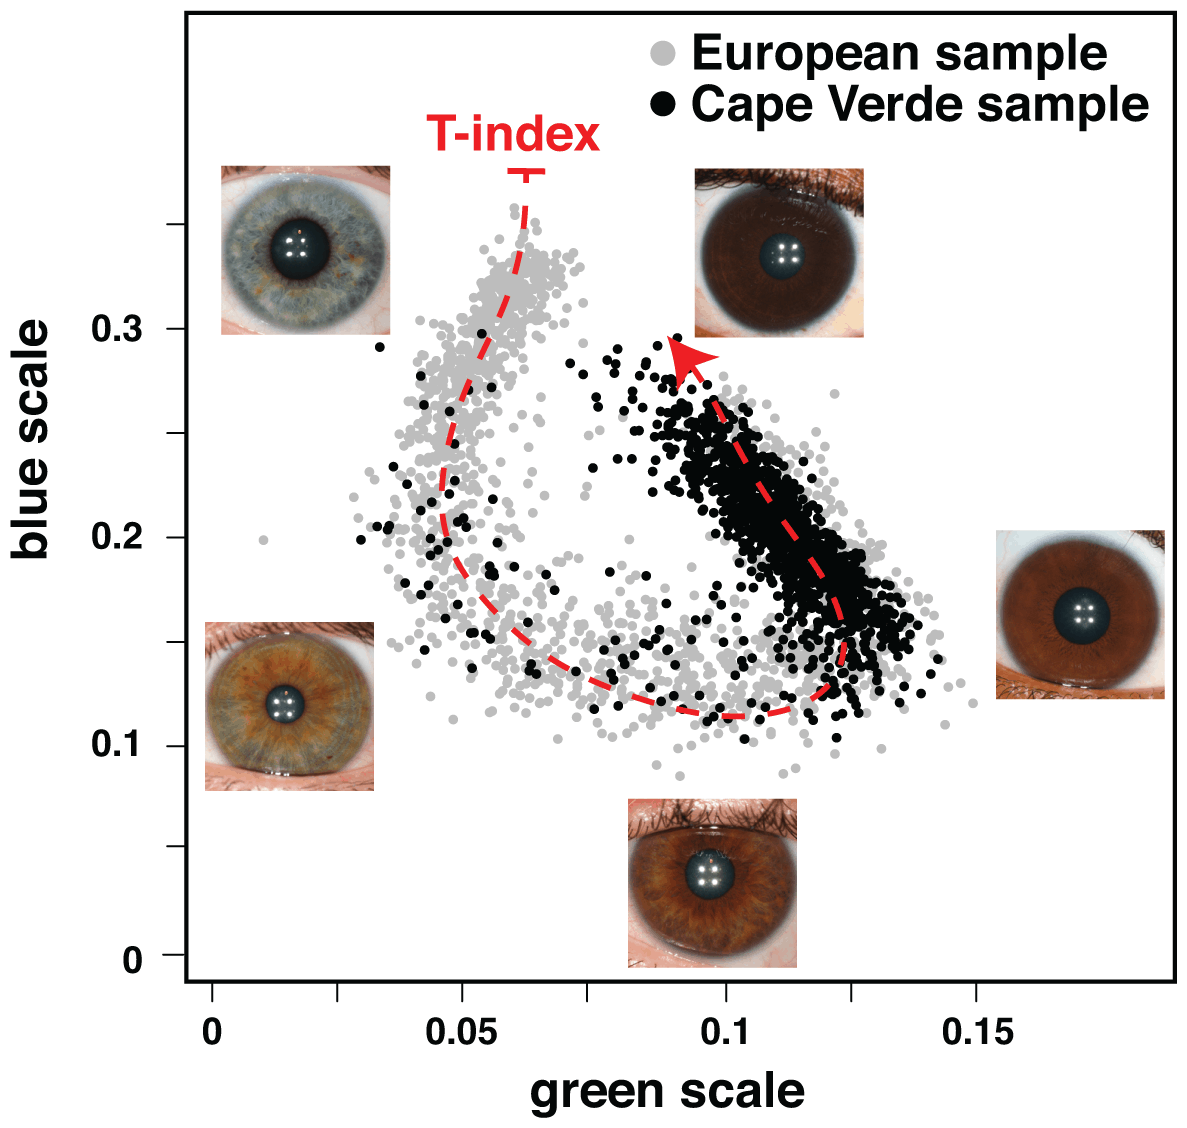 """Figure 2. Quantitative assessment of eye color. Plotted are the normalized median values of green (x-axis) and blue (y-axis) levels of each individual's irises. We fitted a principal curve that explains most of the variation in the data (red dashed curve). The T-index is defined by the arc-length from the projection of each point on the curve to the end of the curve that corresponds to the lightest eye color. In the figure are examples of eye photos at their respective position in the T-index curve. doi:10.1371/journal.pgen.1003372.g002"""